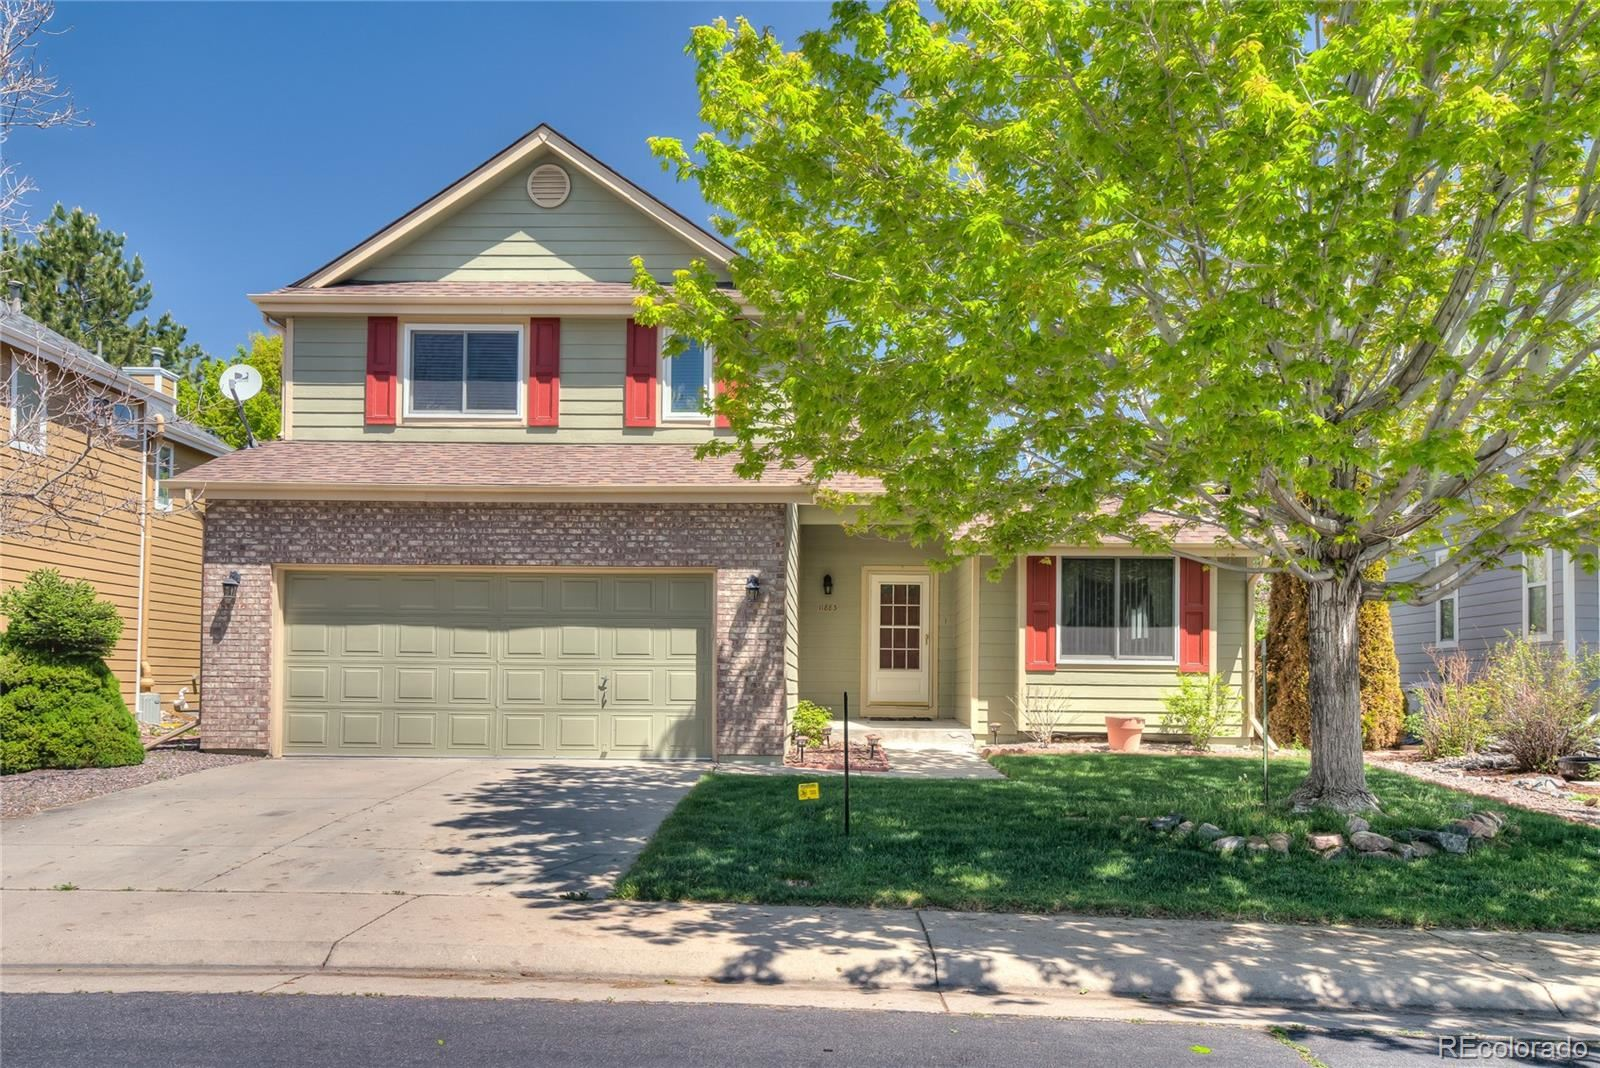 11883 W 84th Place, Arvada, CO 80005 - #: 6709605